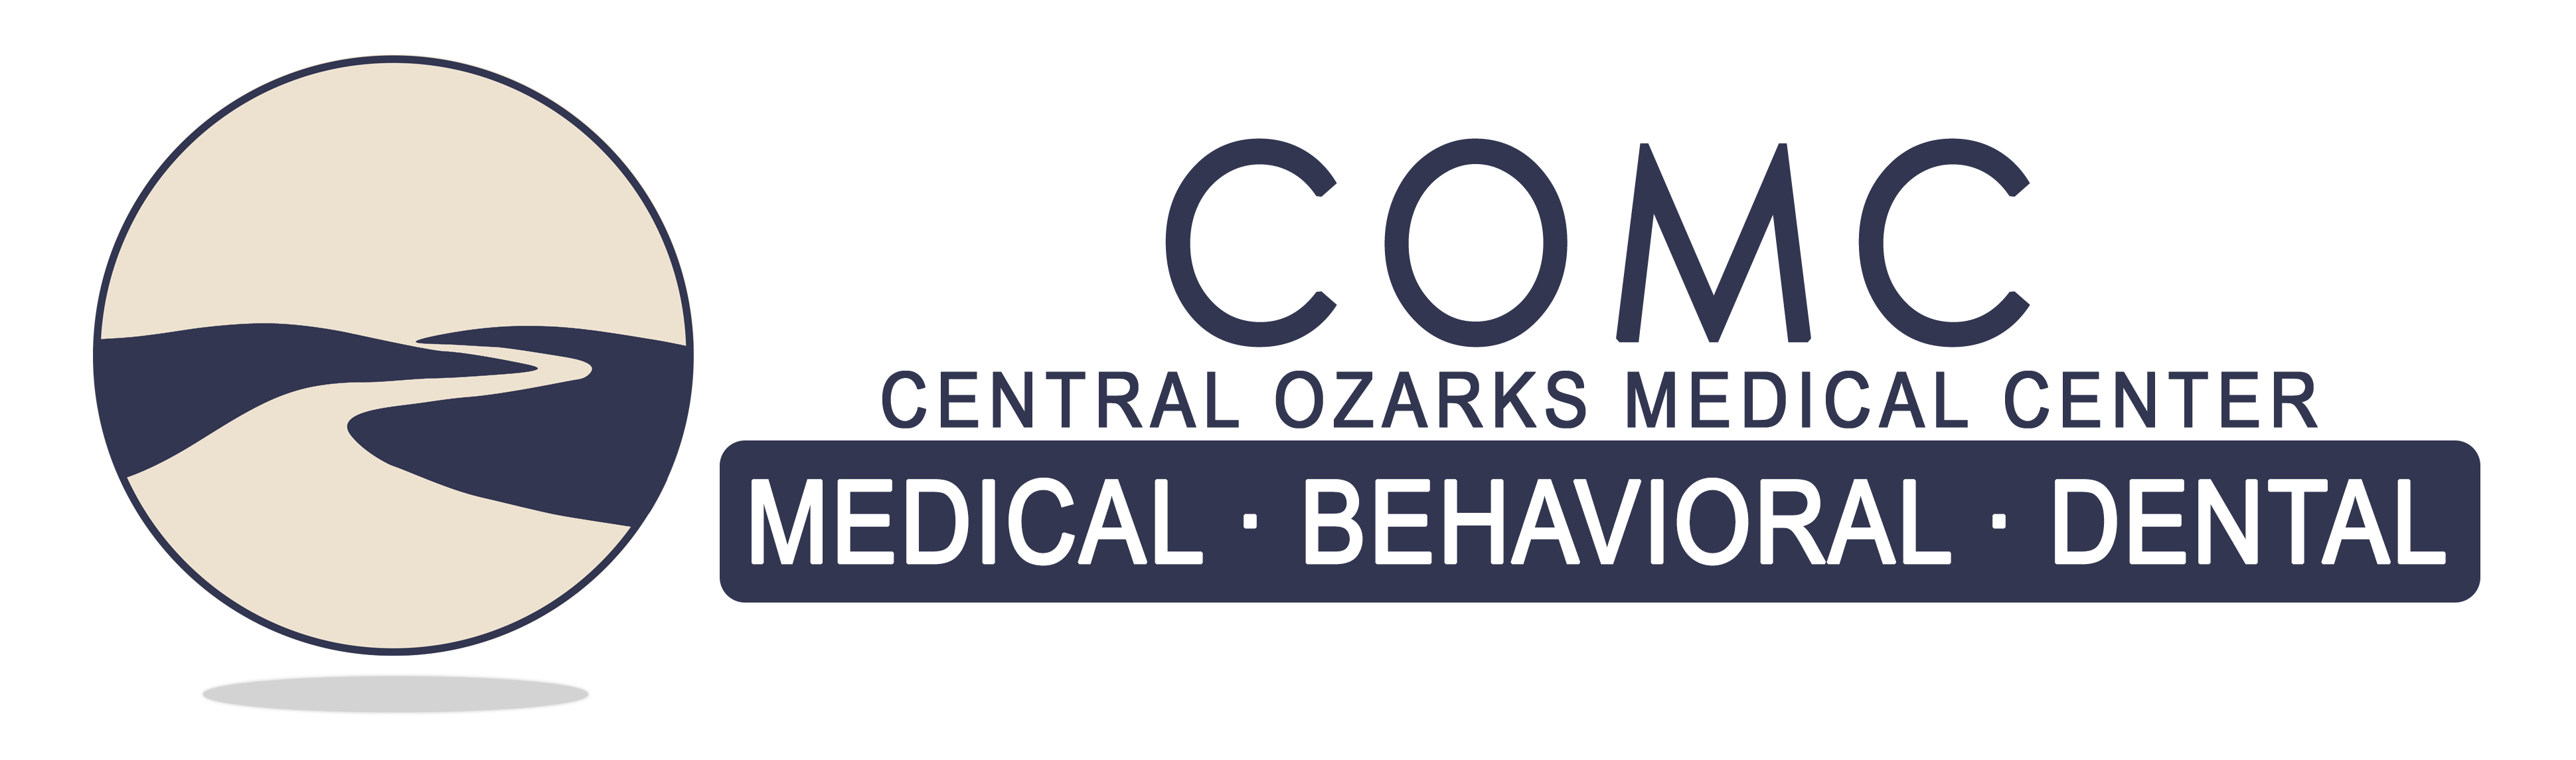 Central Ozarks Medical Center (COMC)